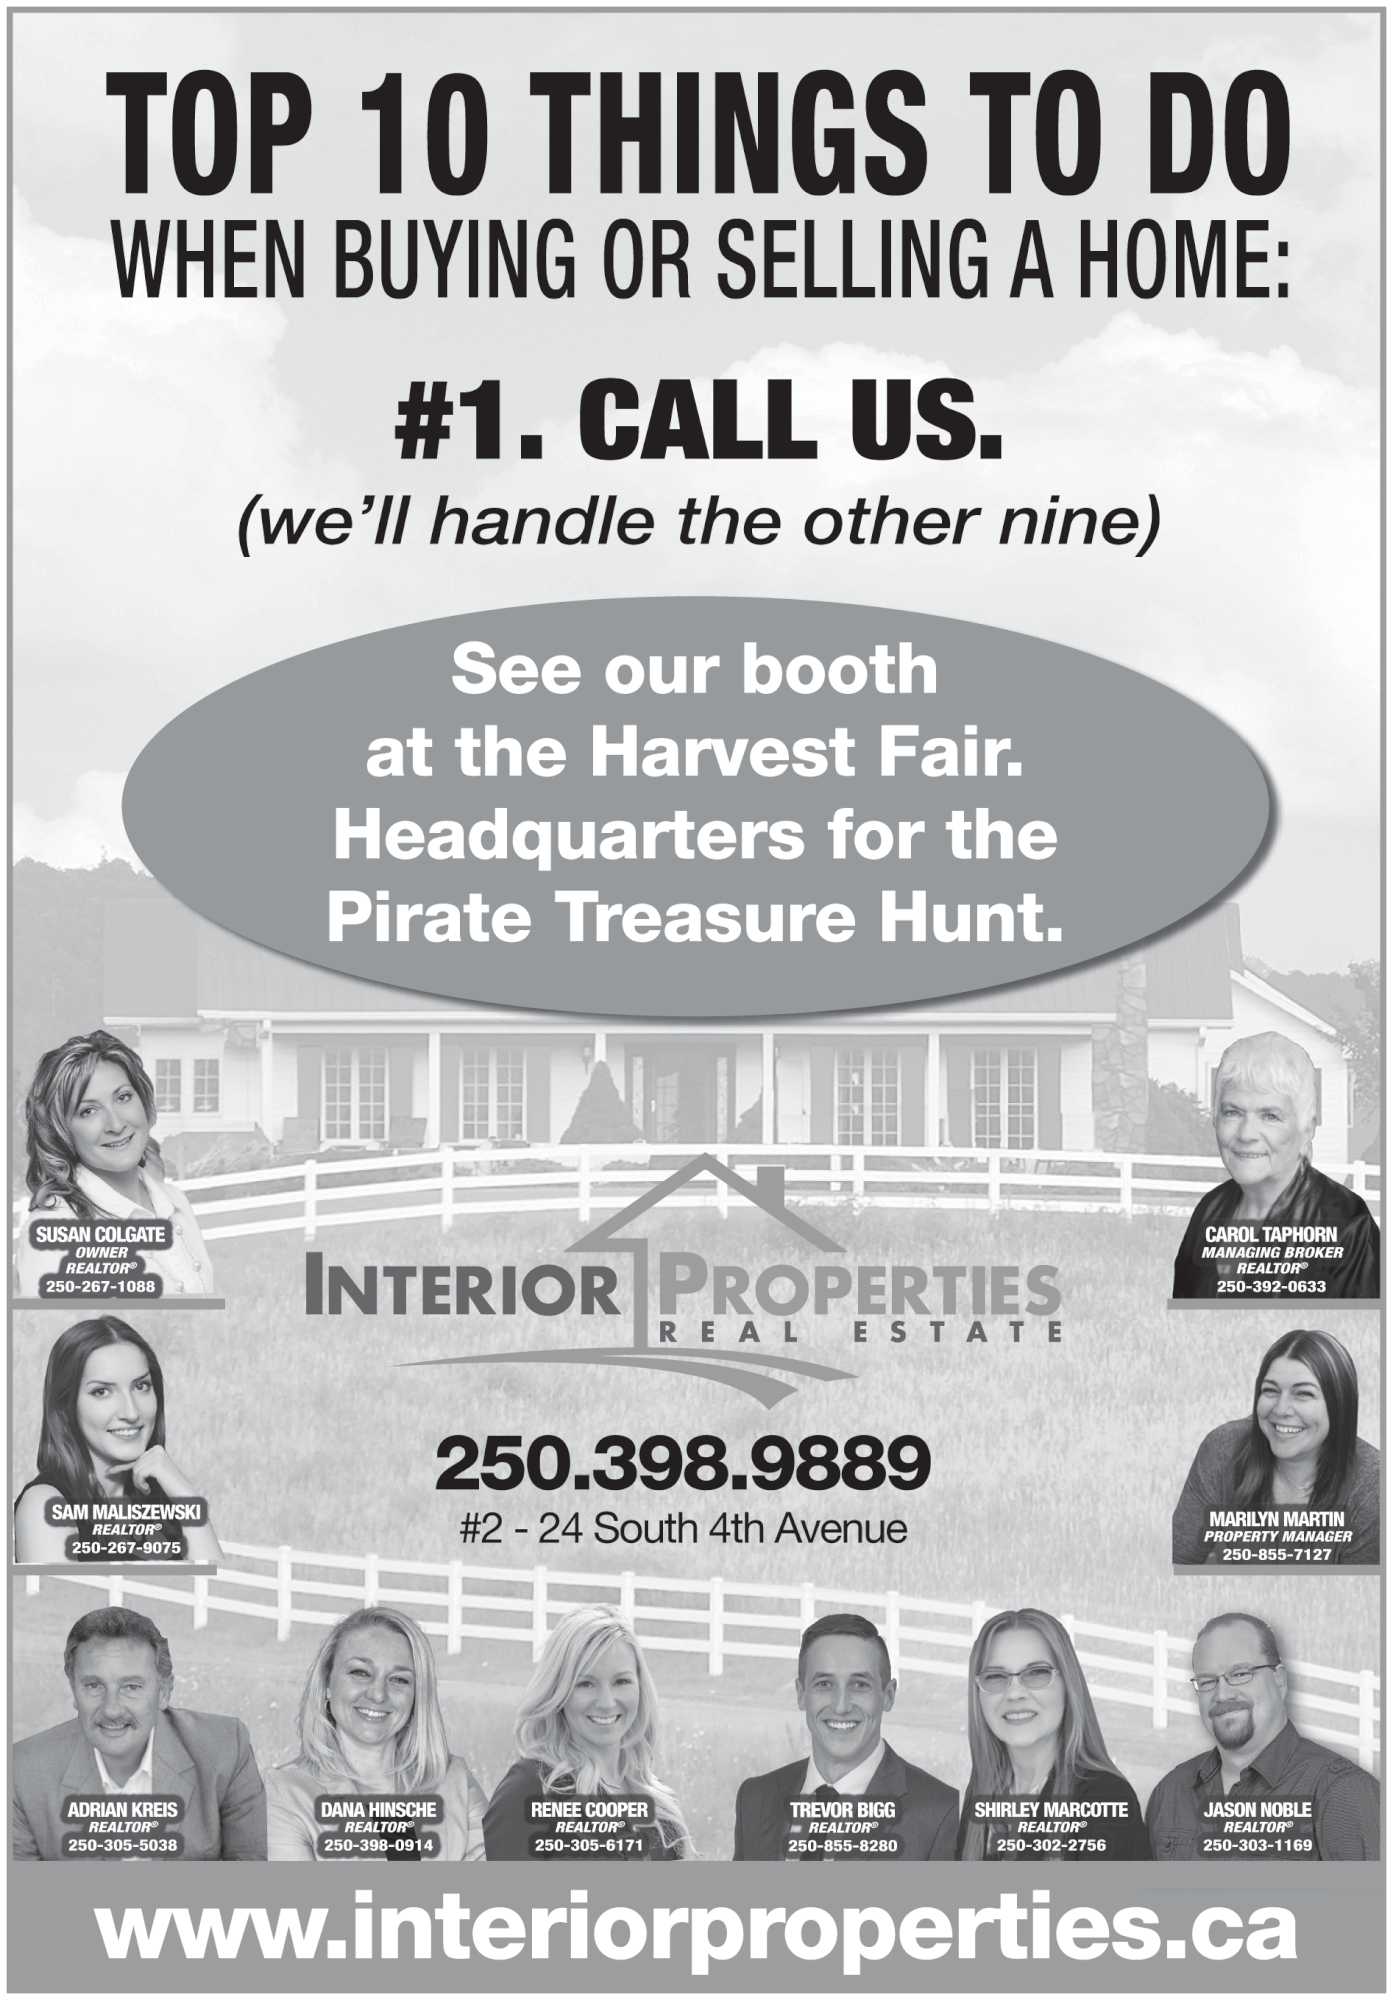 Please take a moment to visit our wonderful sponsors, Interior Properties Real Estate.  Click here.